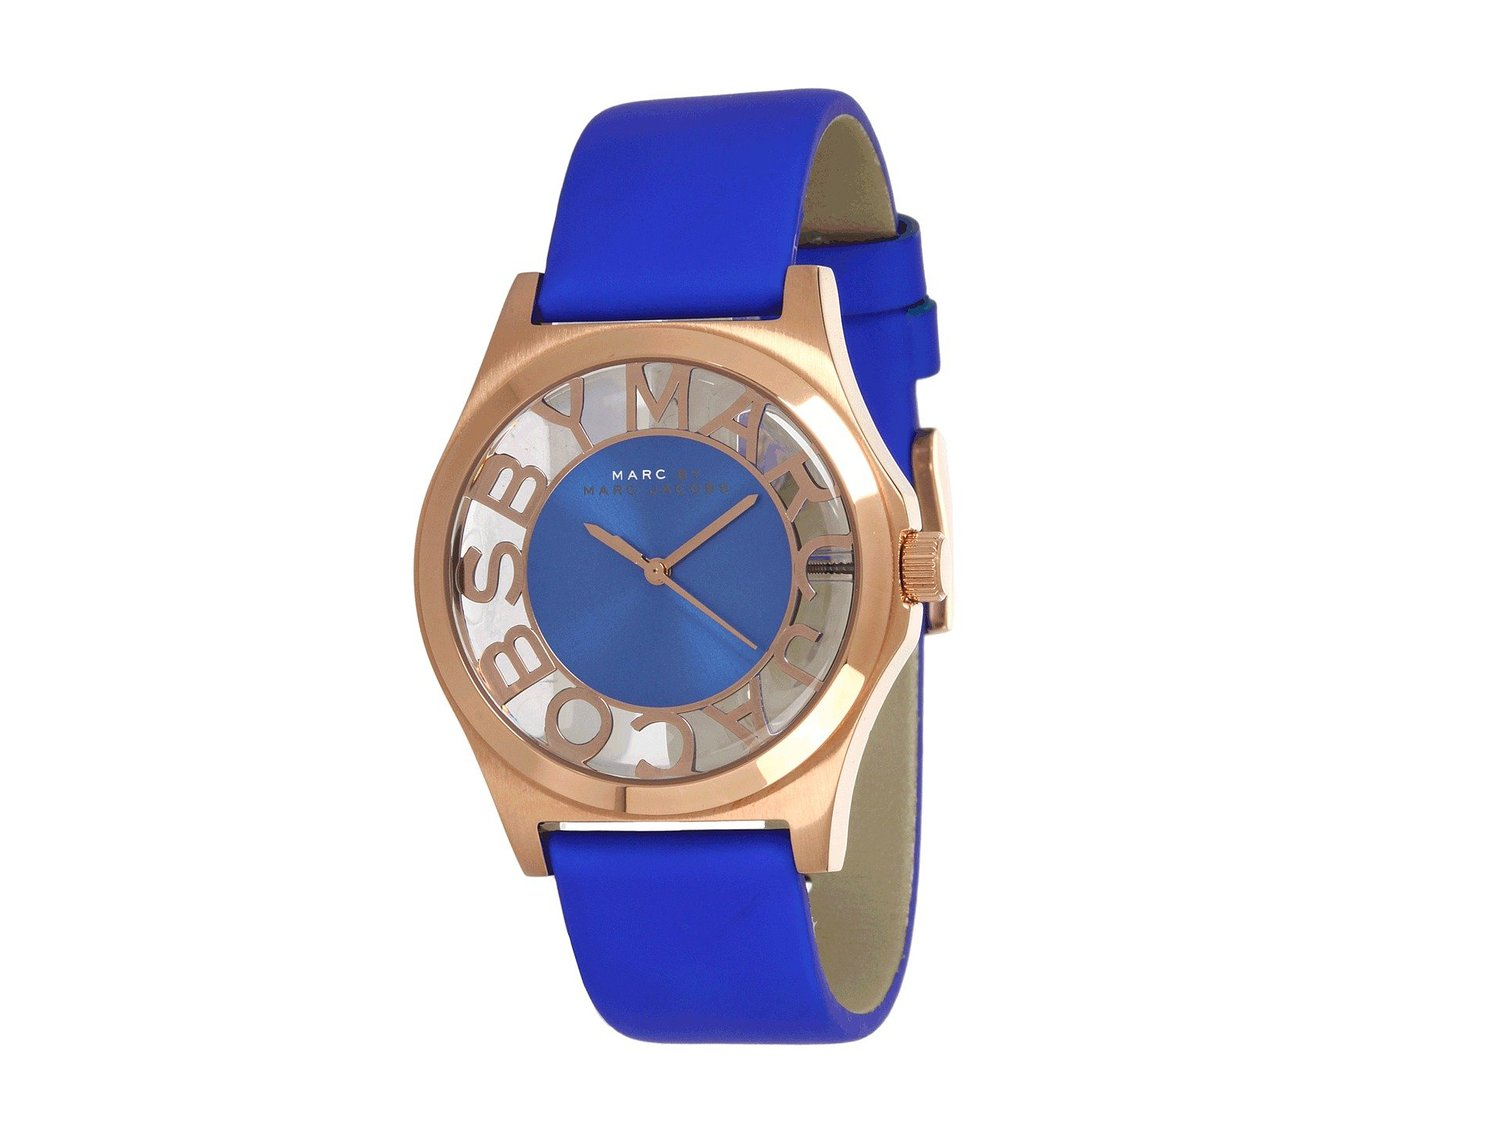 Amazon.com: Marc by Marc Jacobs Henry Blue Cut-out Dial Rose Gold Ion-plated Ladies Watch MBM1244: Marc Jacobs: Watches